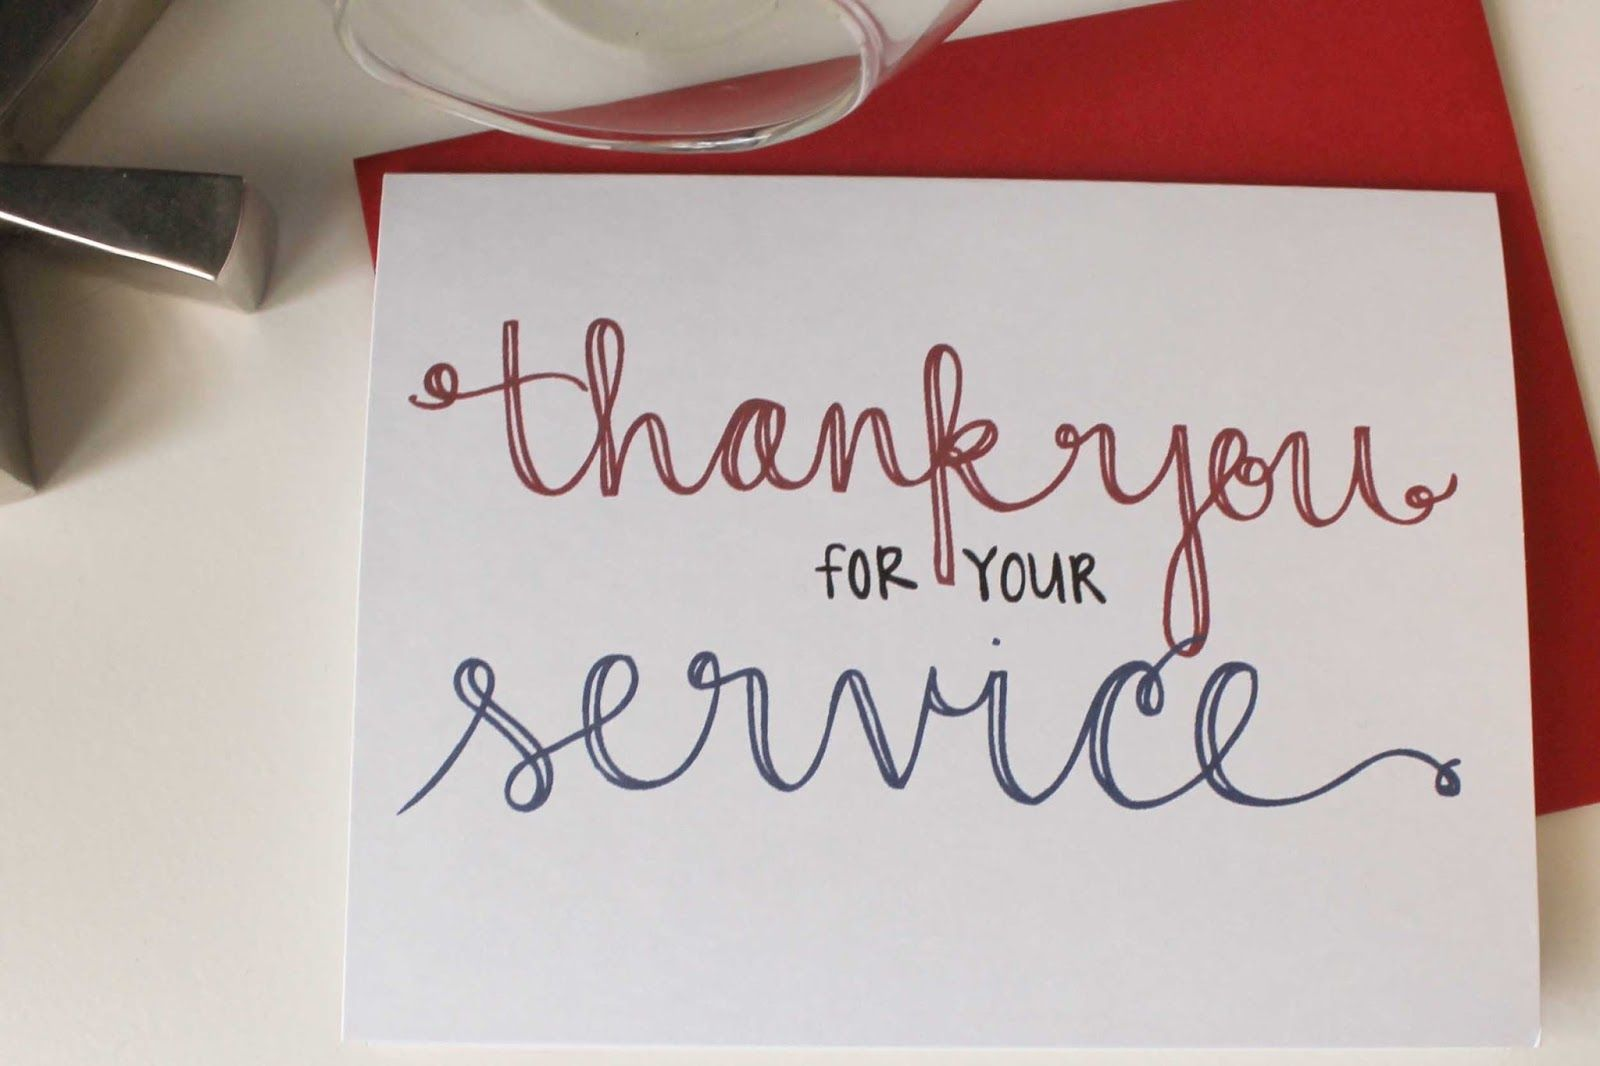 Send A Thank You Card To Our Troops With Images